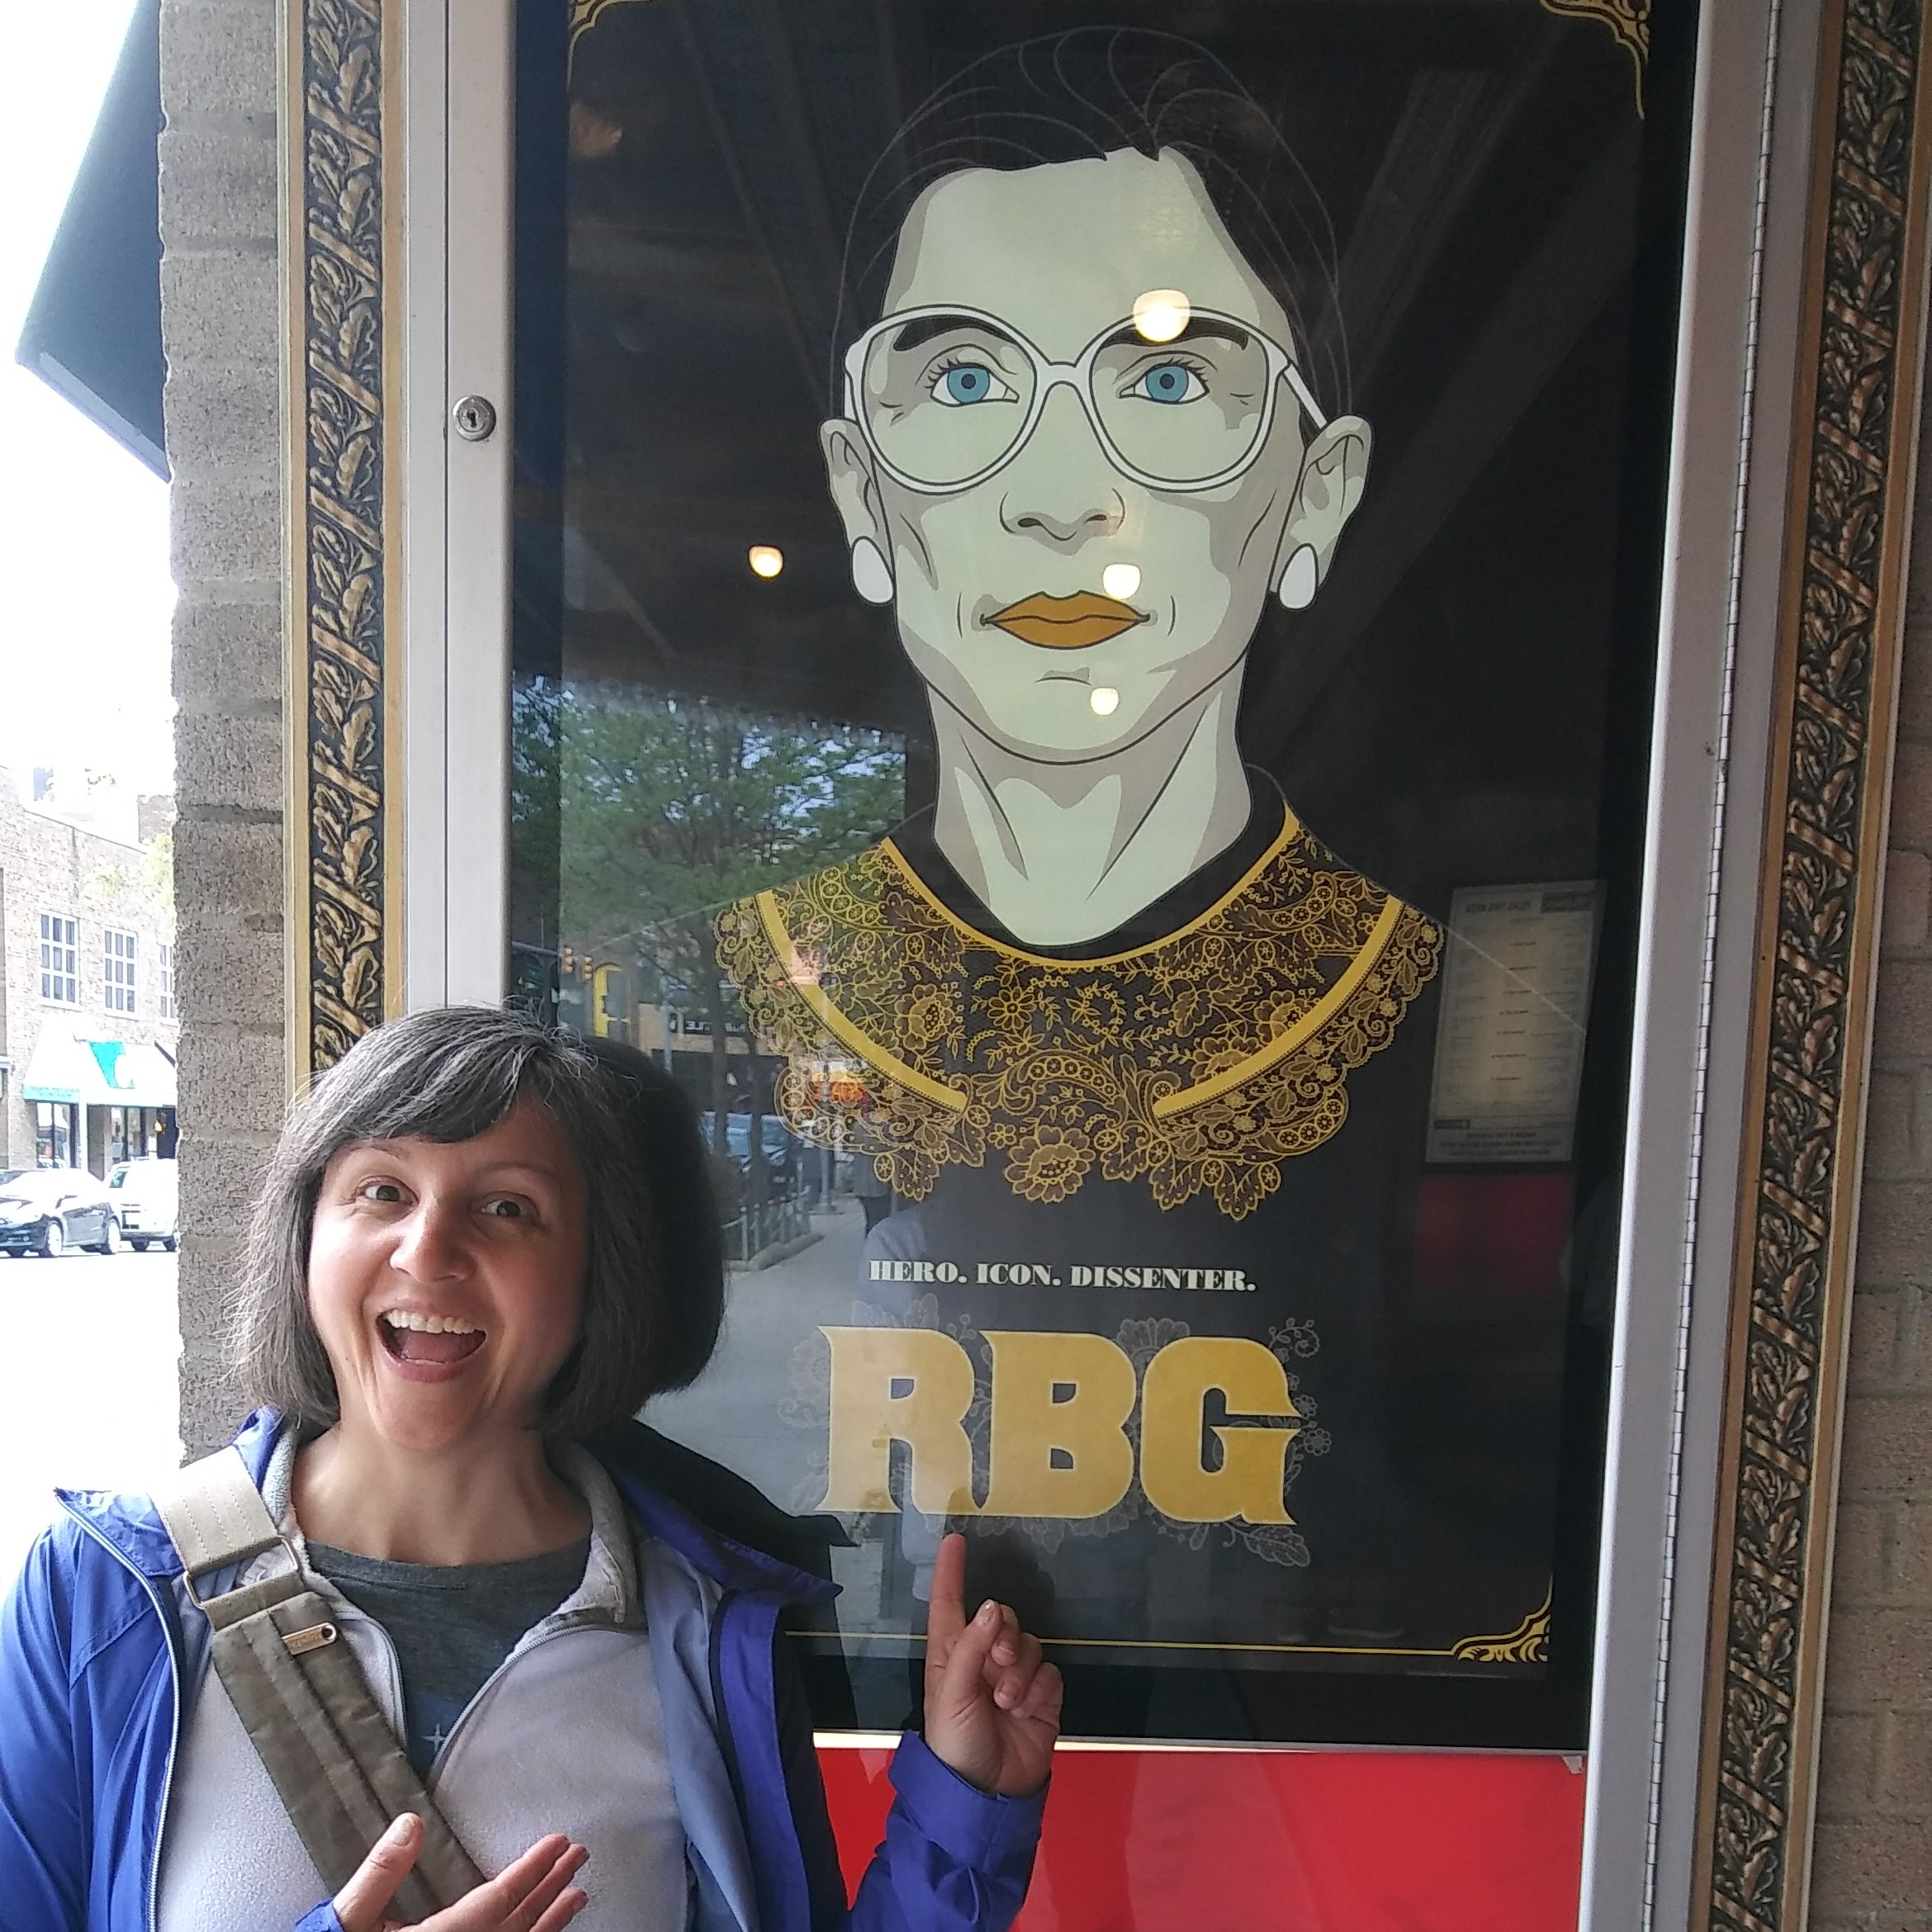 Me standing in front of the RBG movie poster